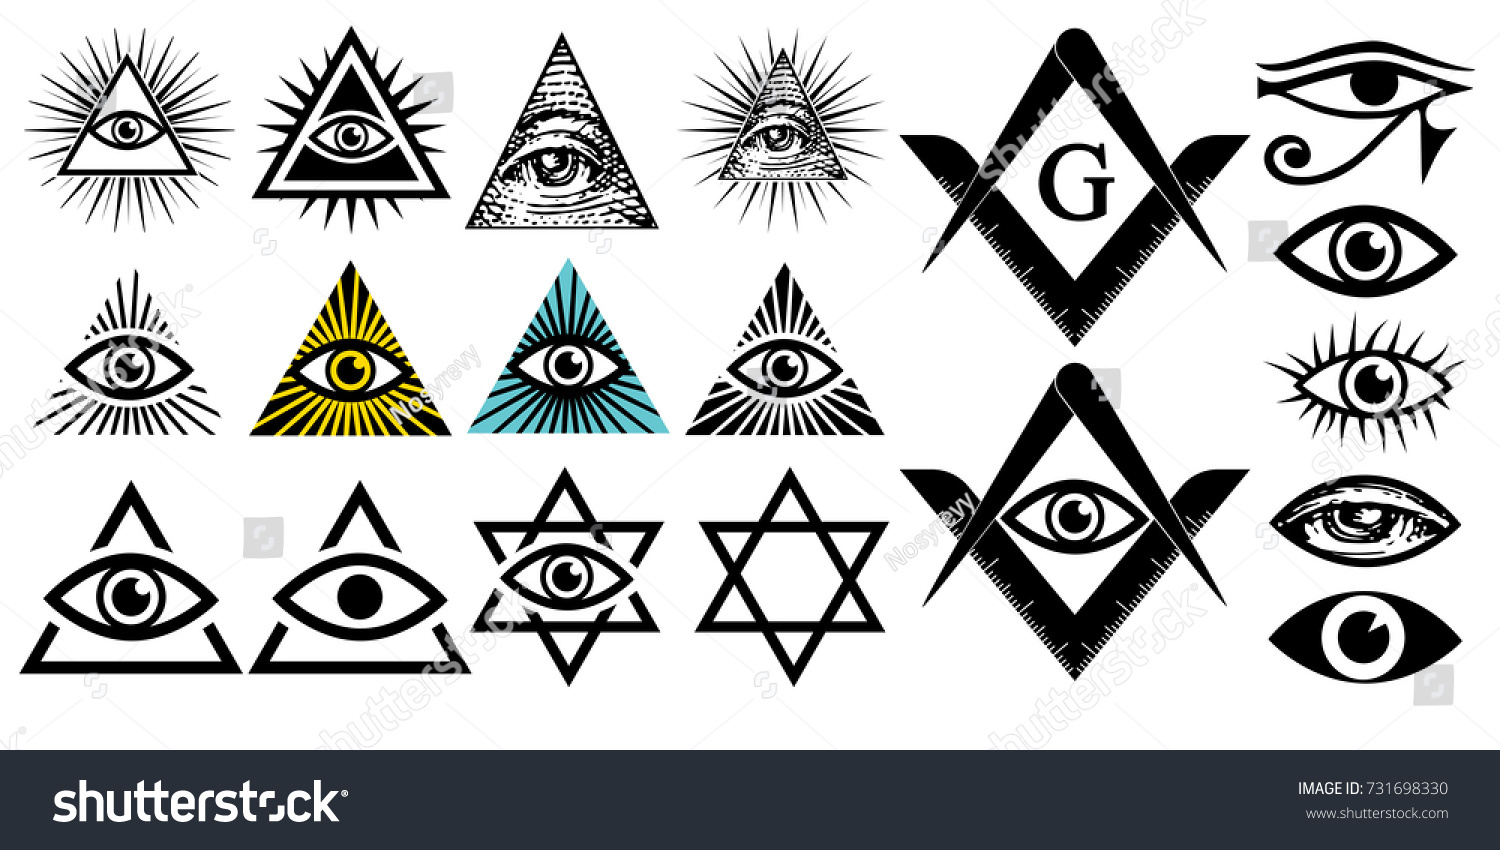 All Seeing Eye Illuminati Symbols Masonic Stock Vector Royalty Free